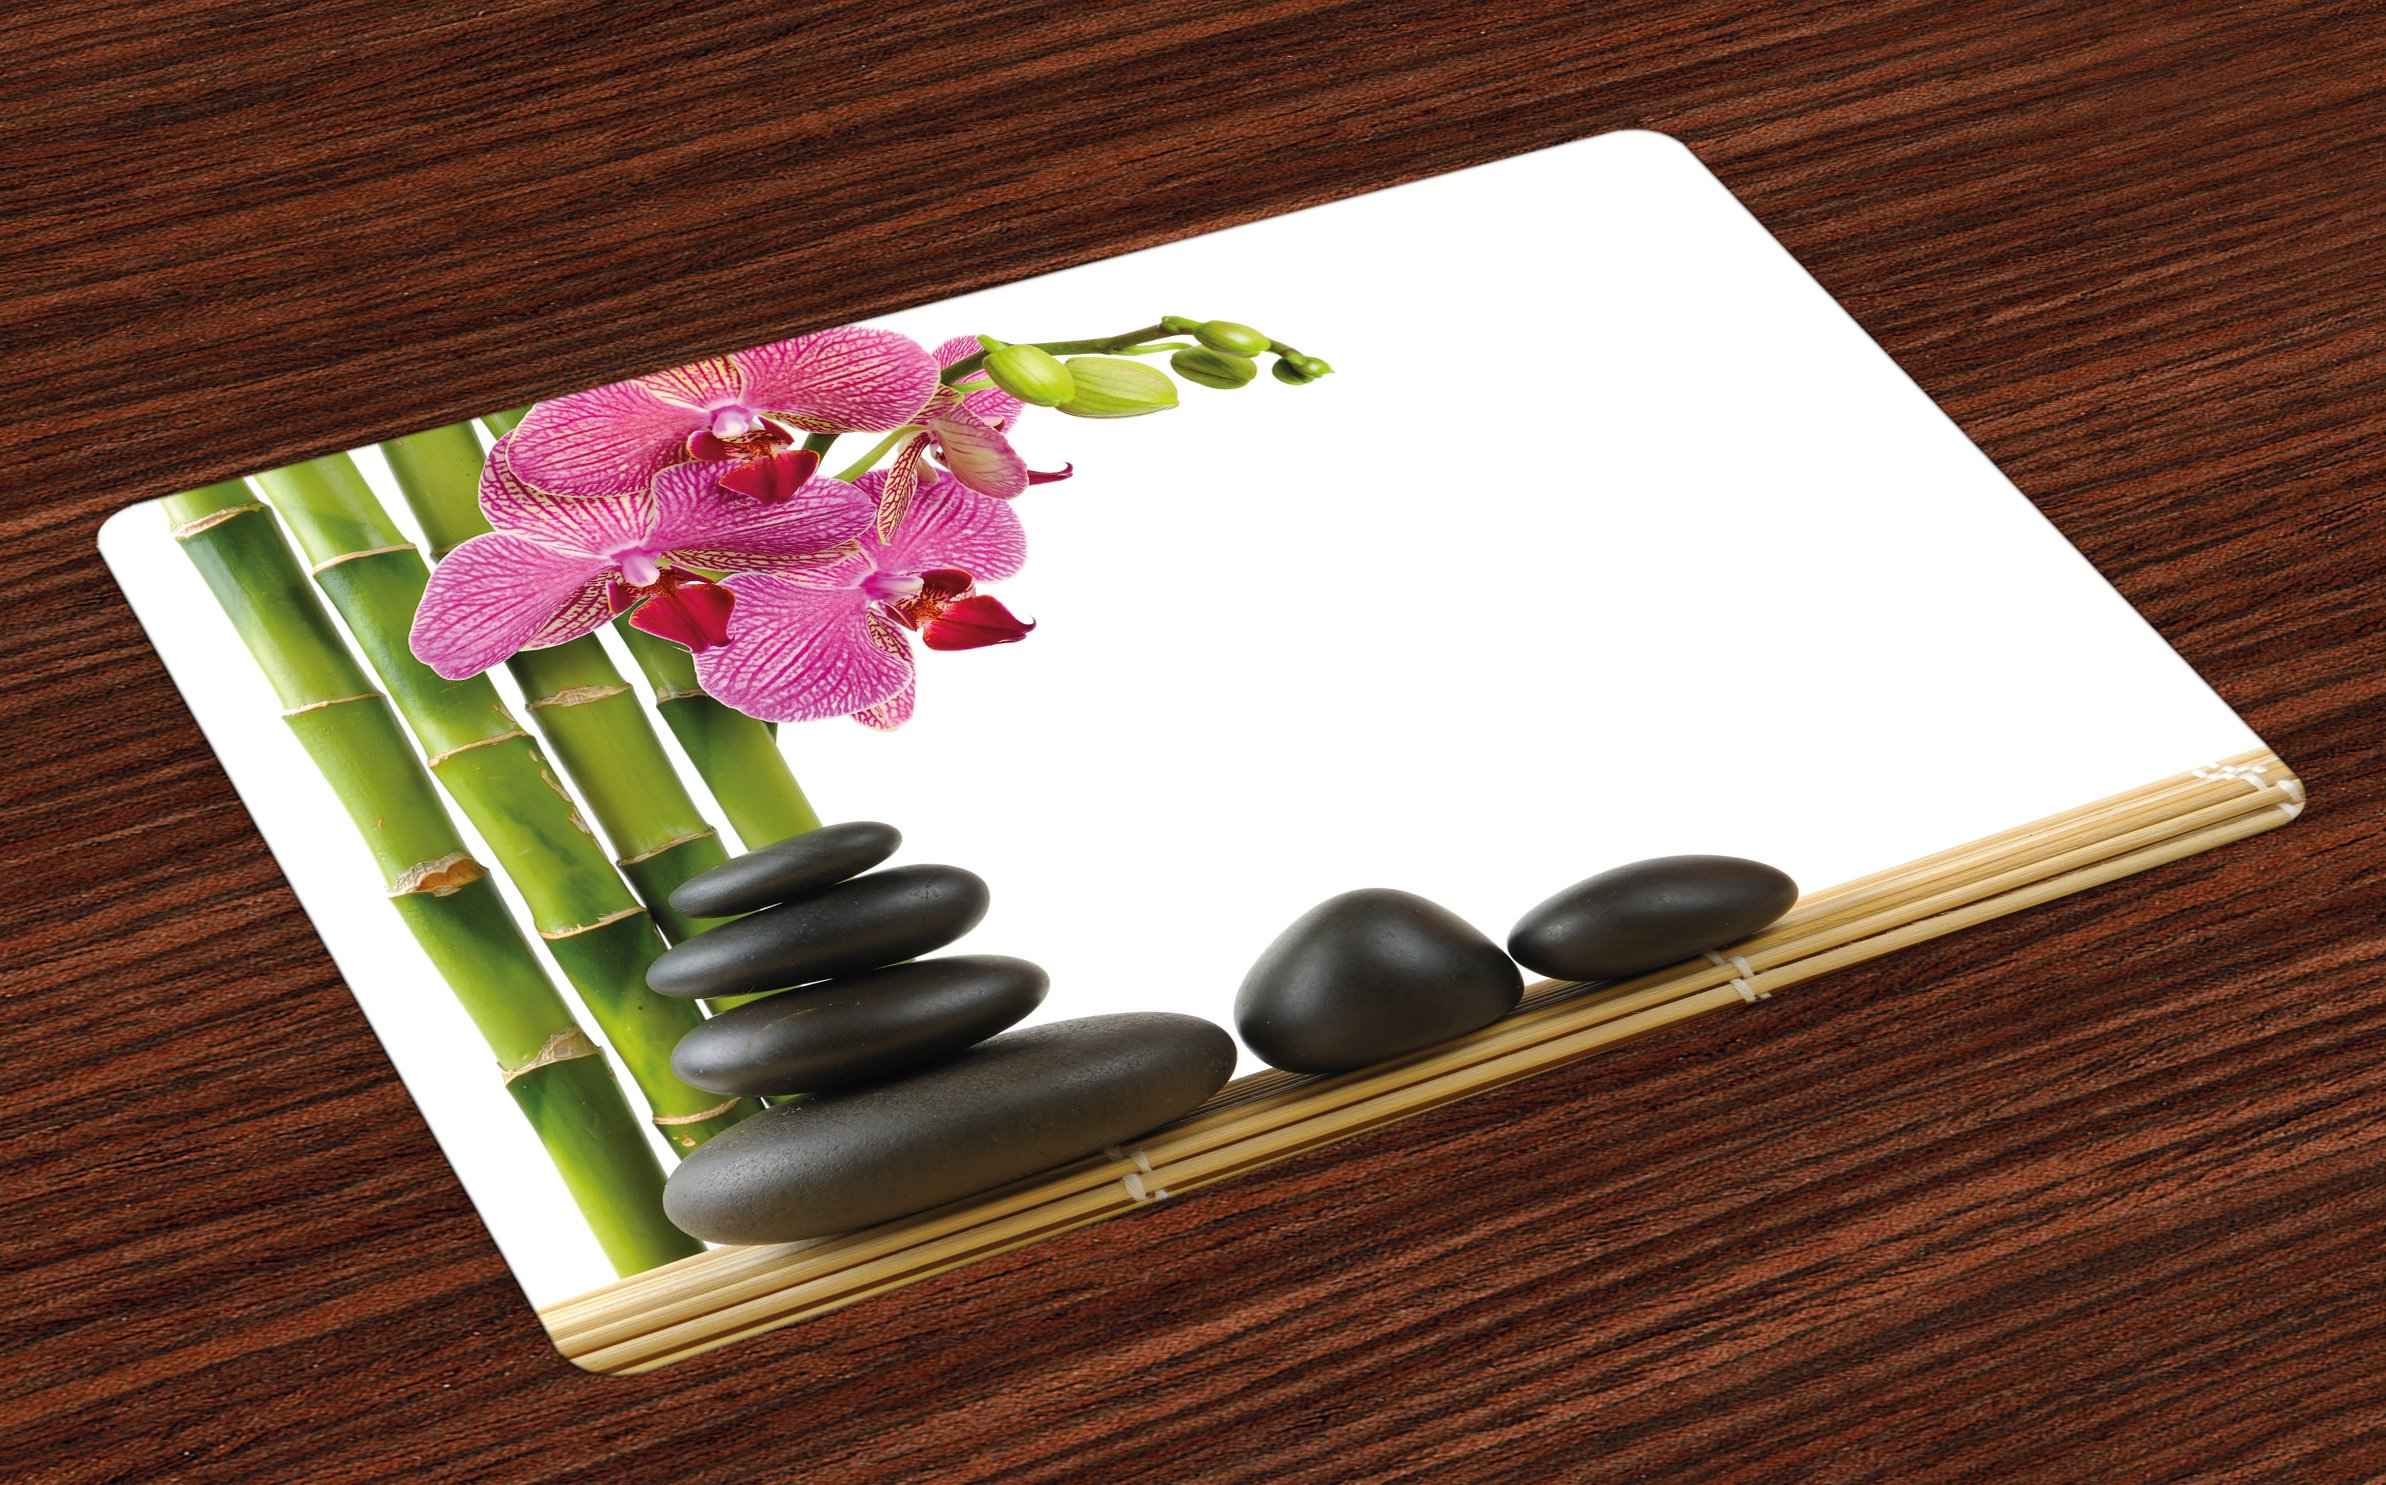 Ambesonne Spa Place Mats Set of 4, Beautiful Pink Orchid with Bamboos and Black Hot Stone Massage Image Print, Washable Fabric Placemats for Dining Room Kitchen Table Decor, Pink Green and Black